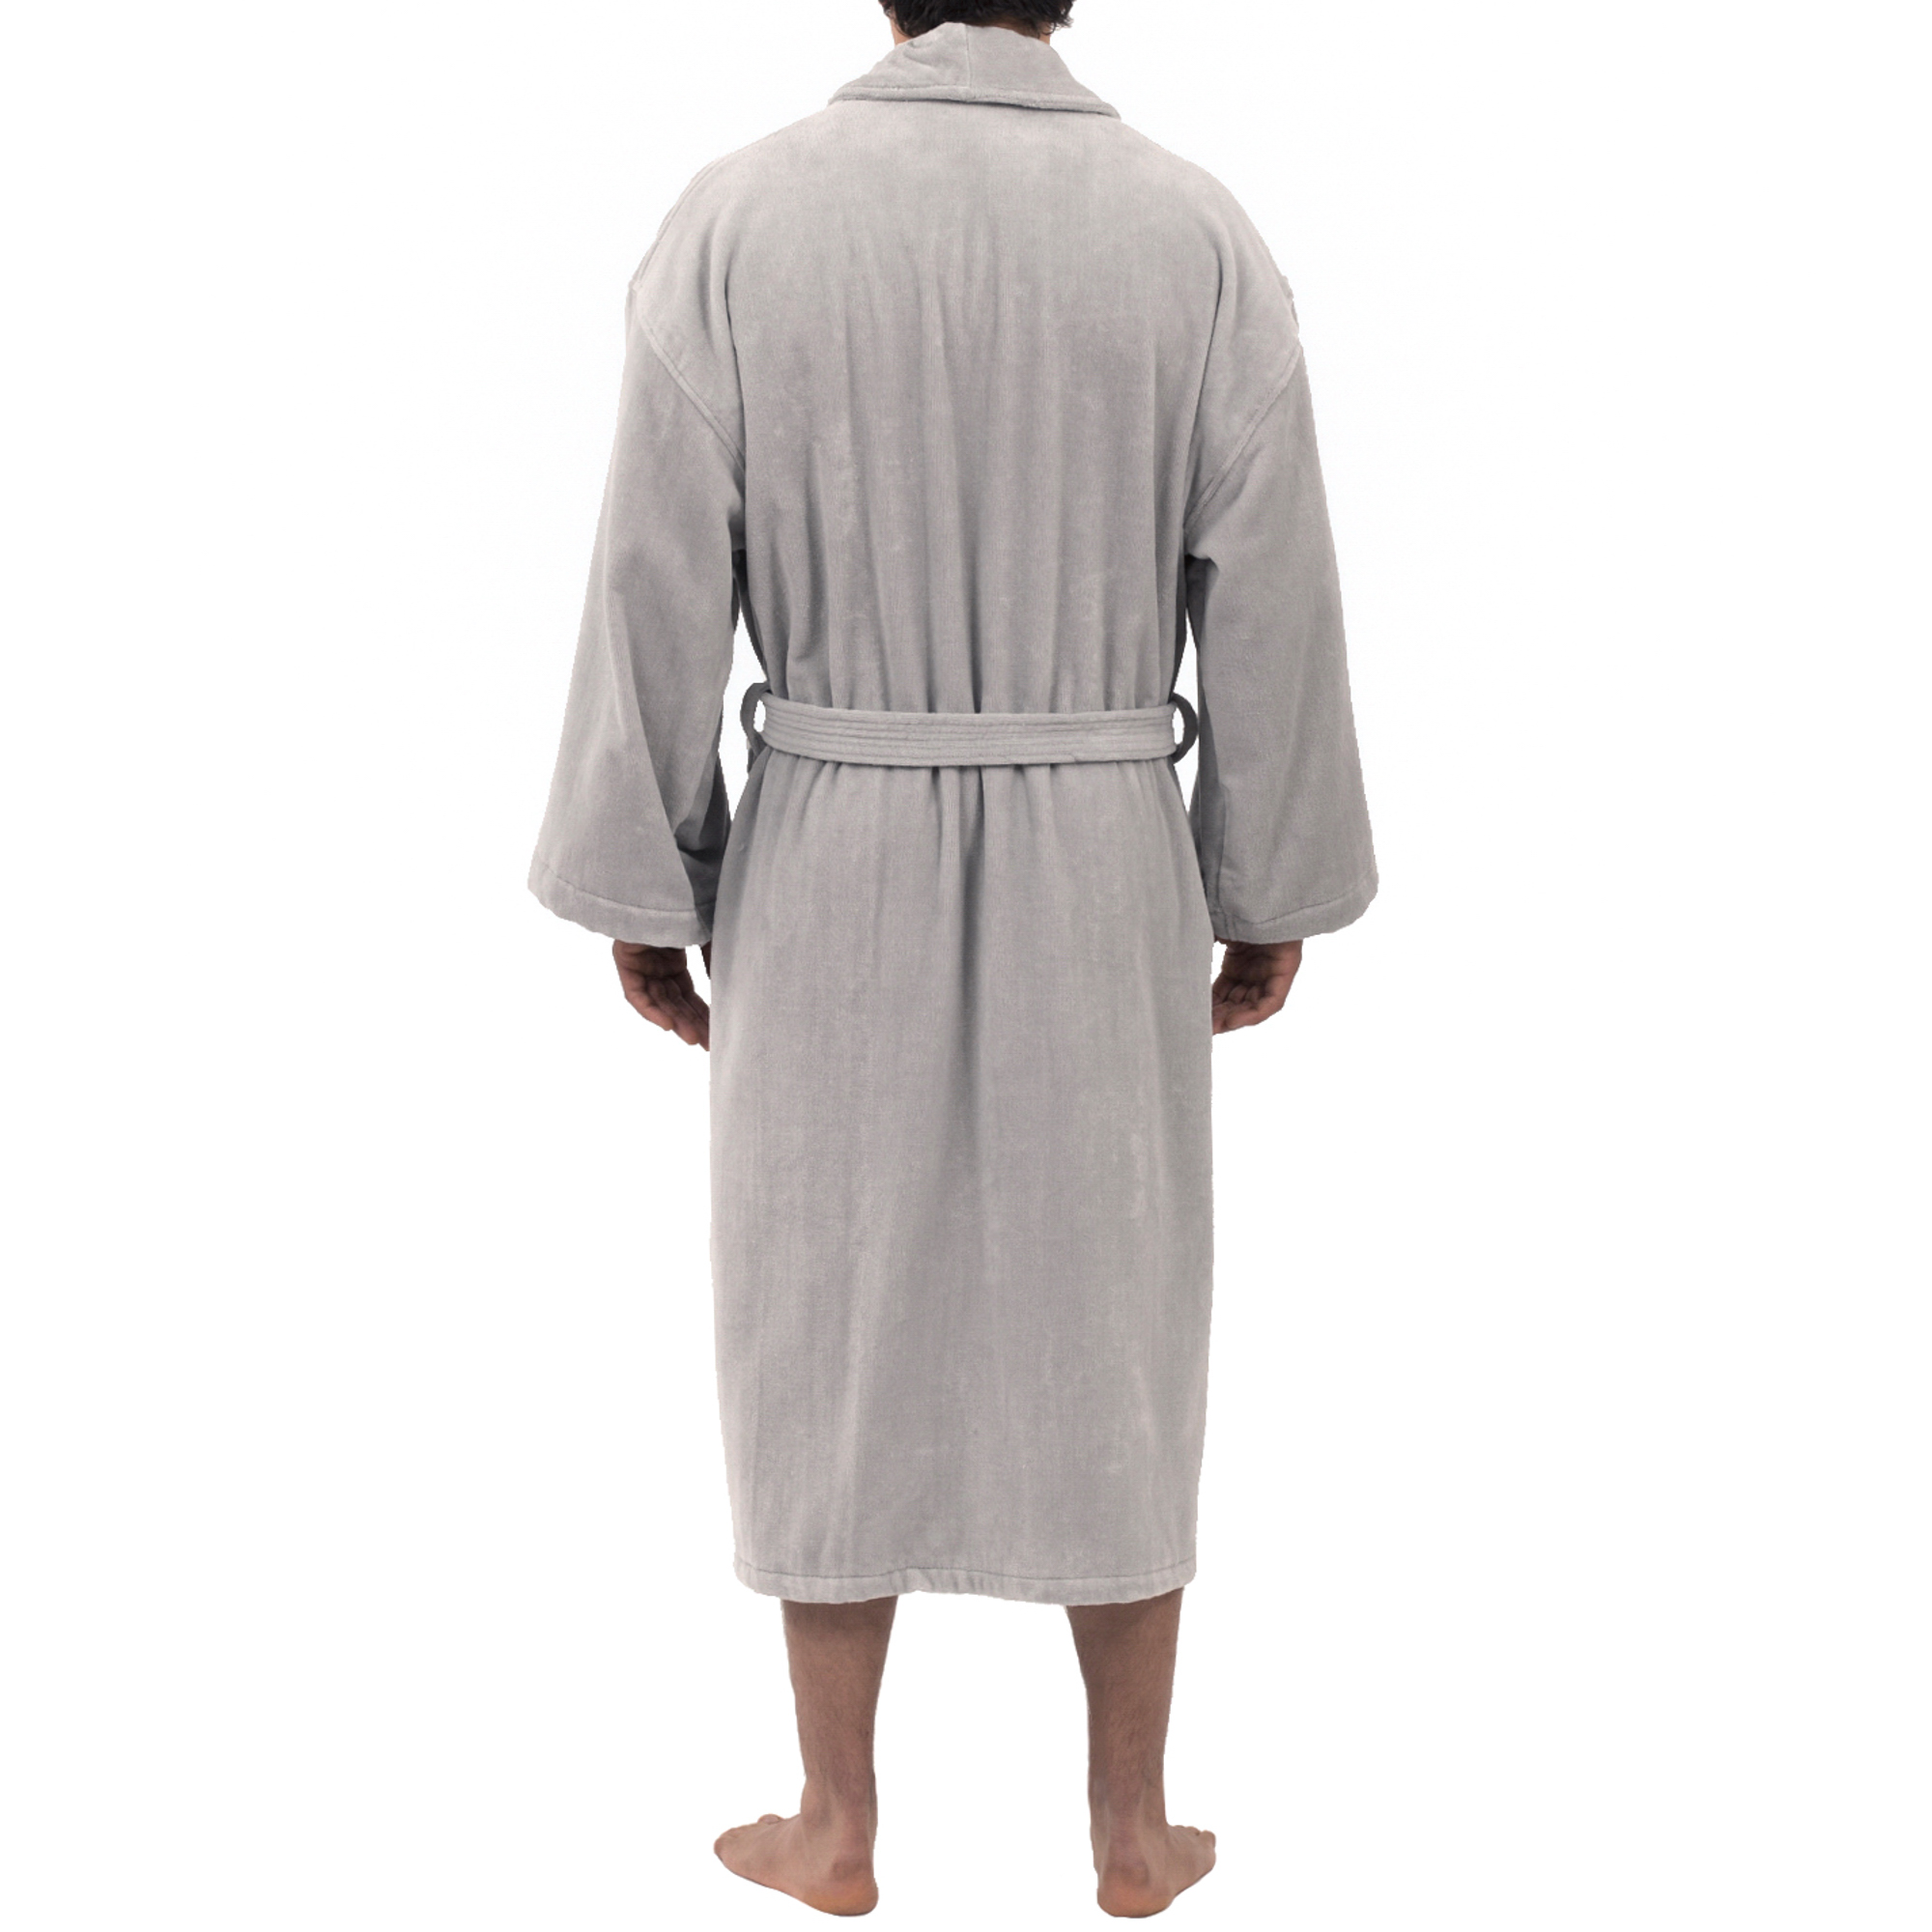 8949f9293c Alpine Swiss Aiden Mens Cotton Terry Cloth Bathrobe Shawl Collar ...